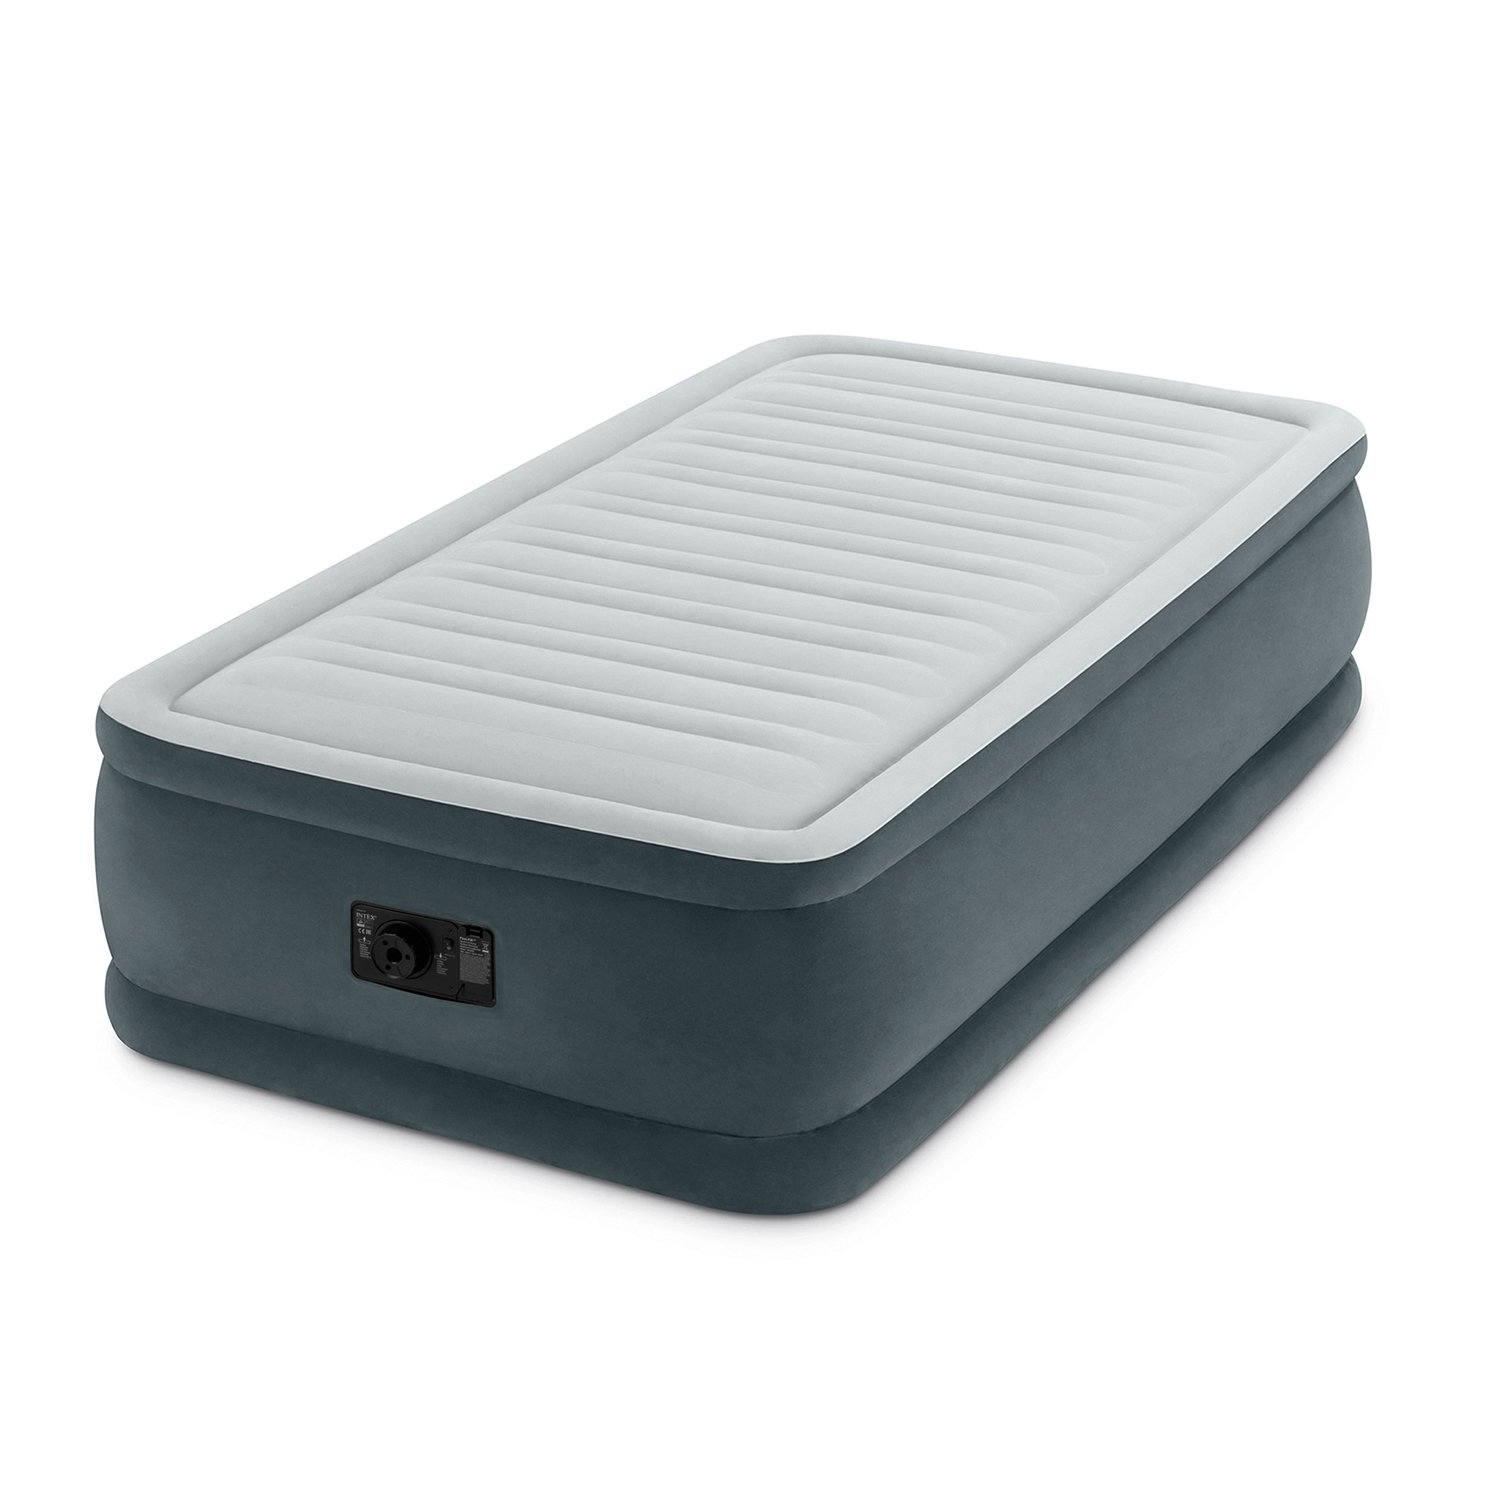 Intex Comfort Plush Elevated Dura-Beam Airbed with Built-in Electric Pump, Bed Height 18'', Twin by Intex (Image #1)